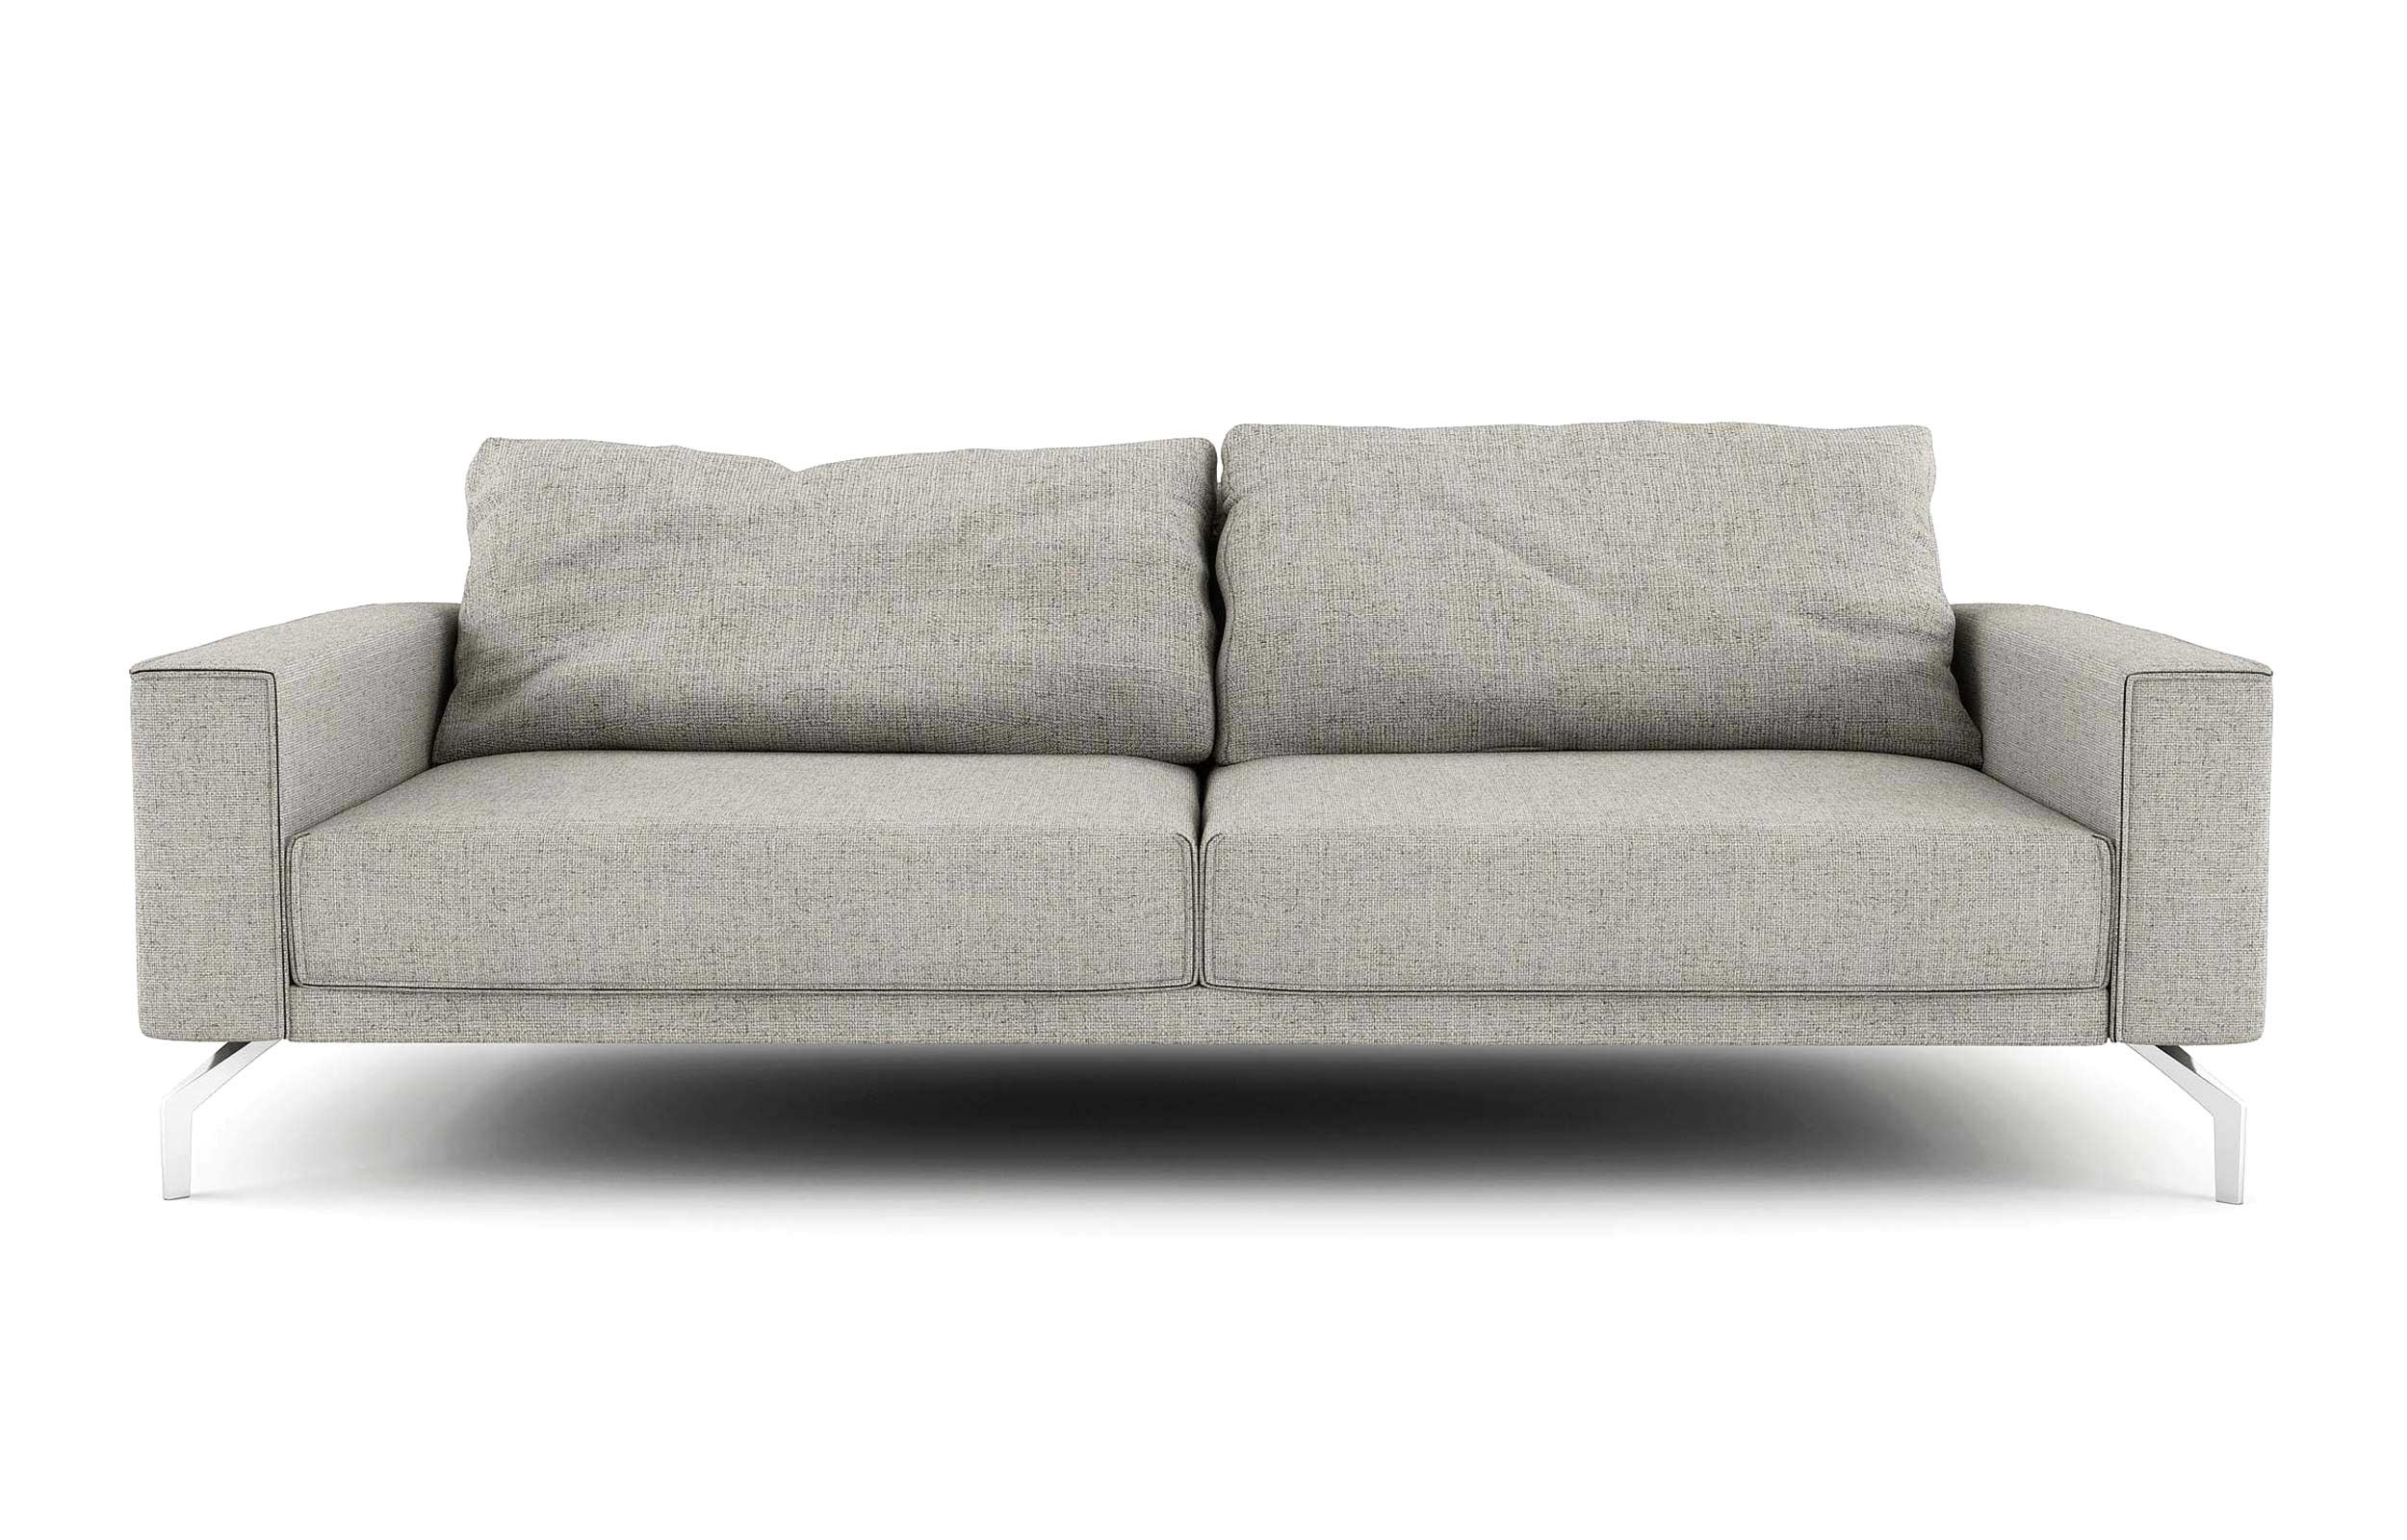 Modern Sofas, Modern Couches – Stem With Regard To Brennan Sofa Chairs (View 21 of 25)